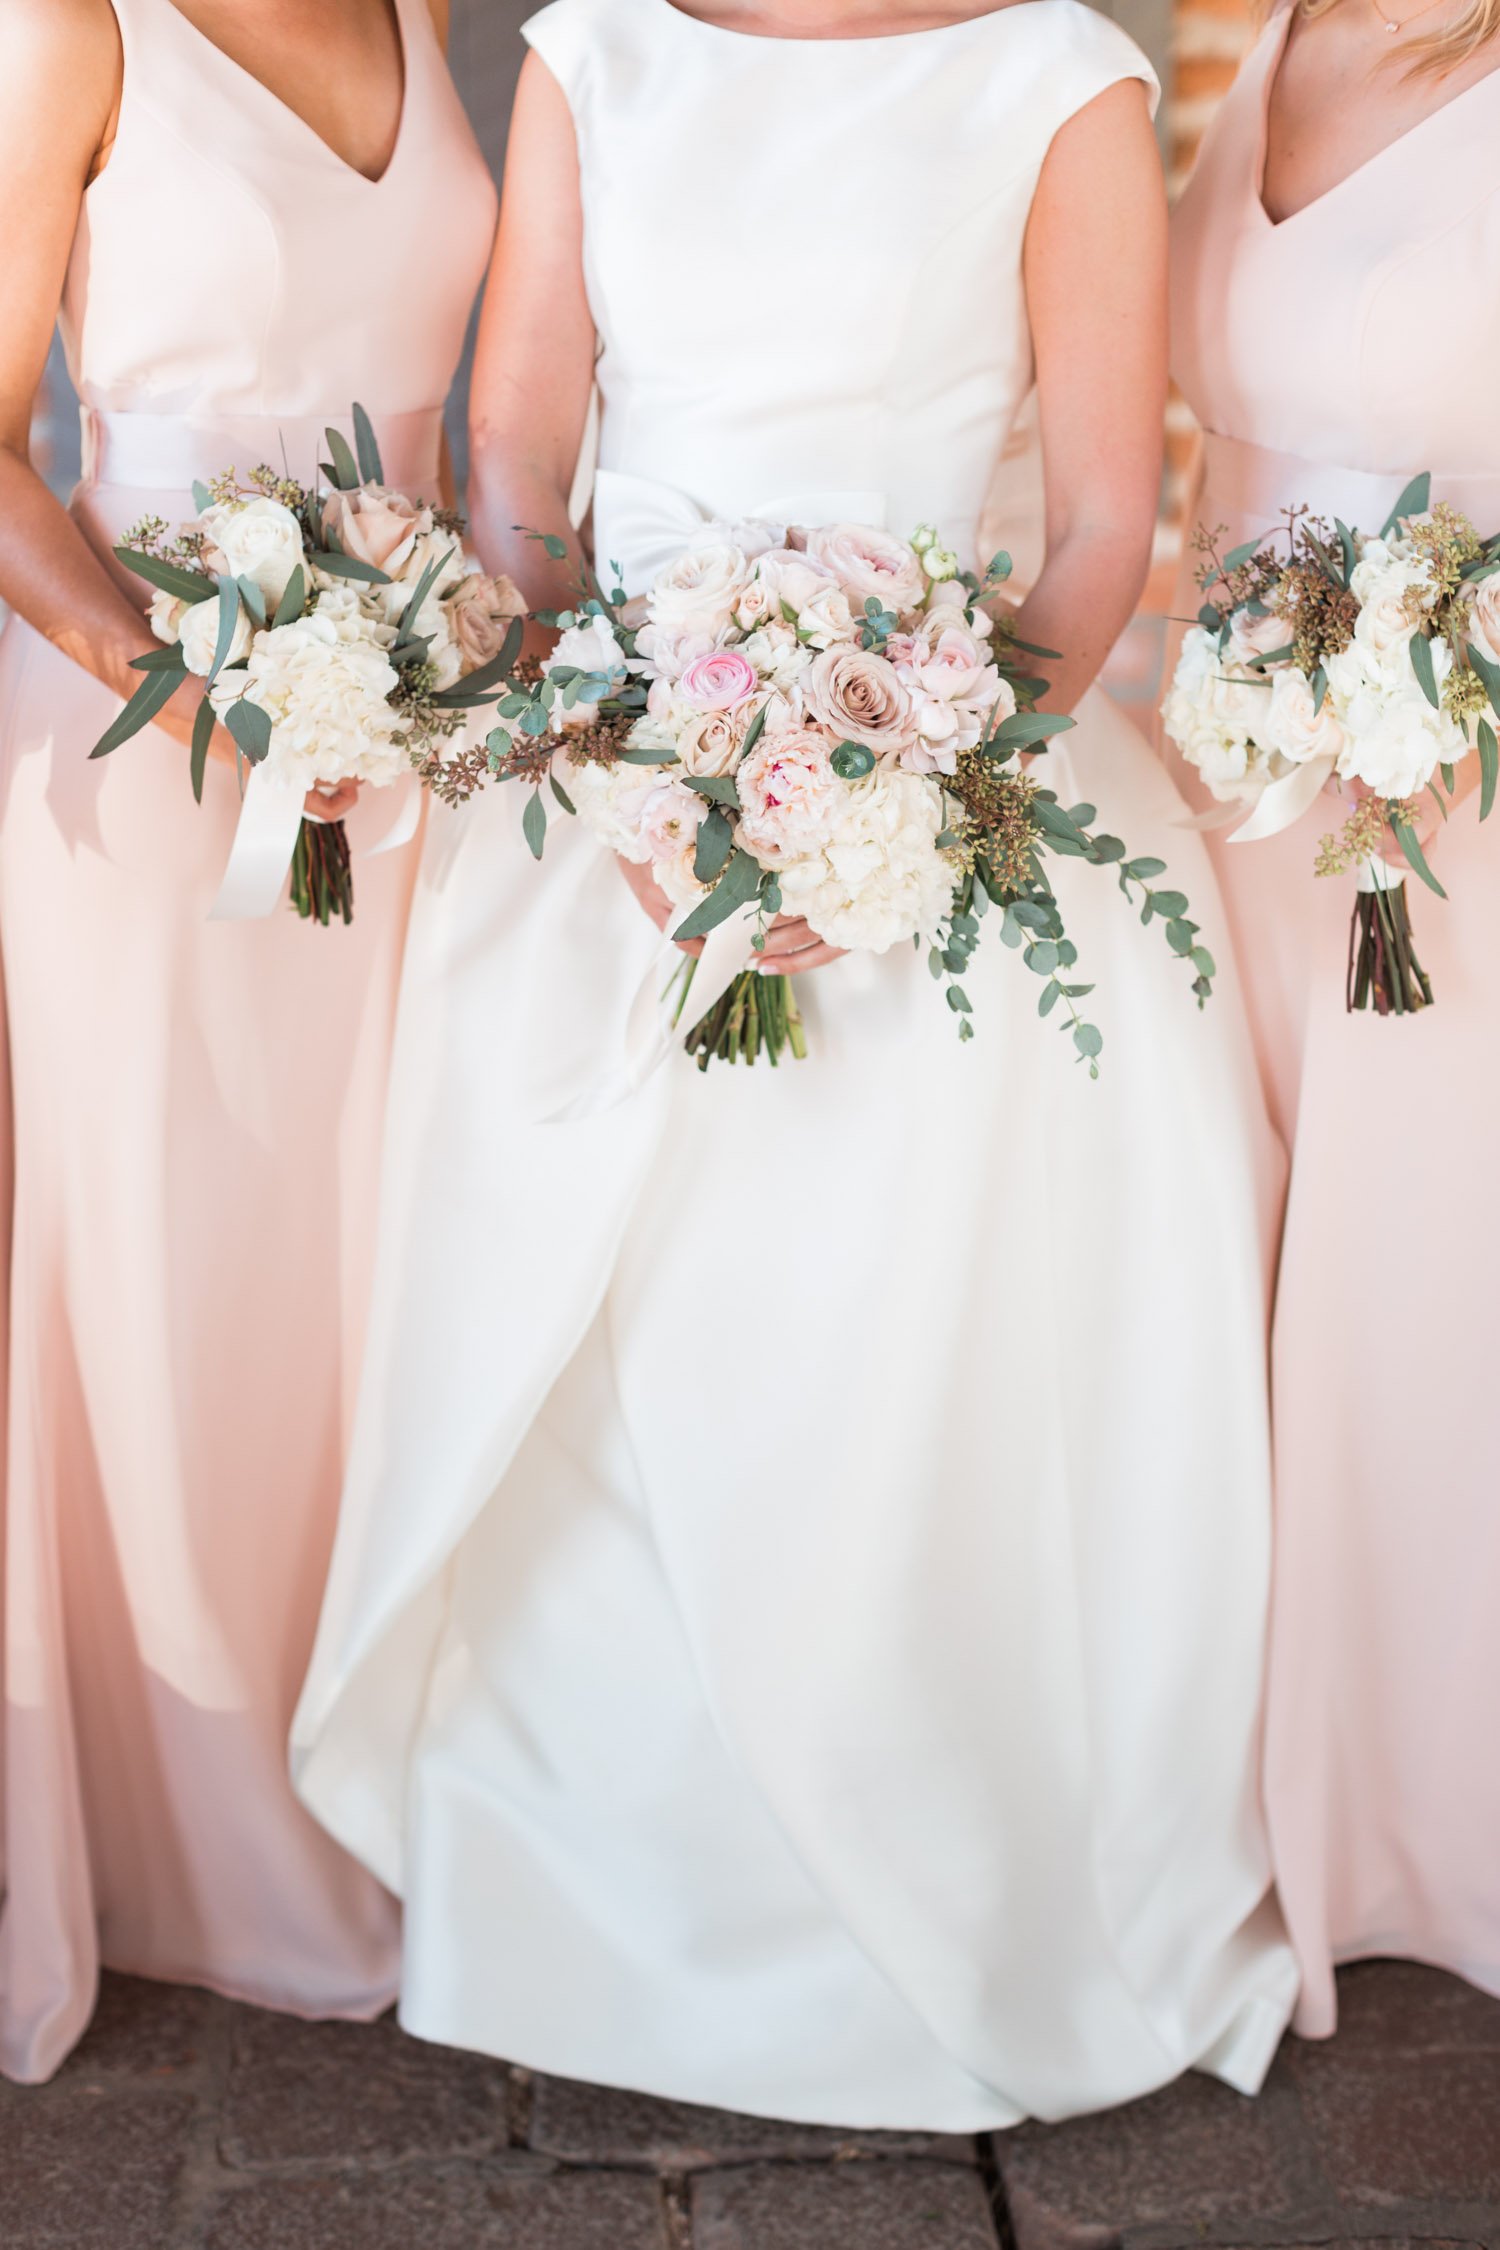 Blush and white bouquets with eucalyptus greenery